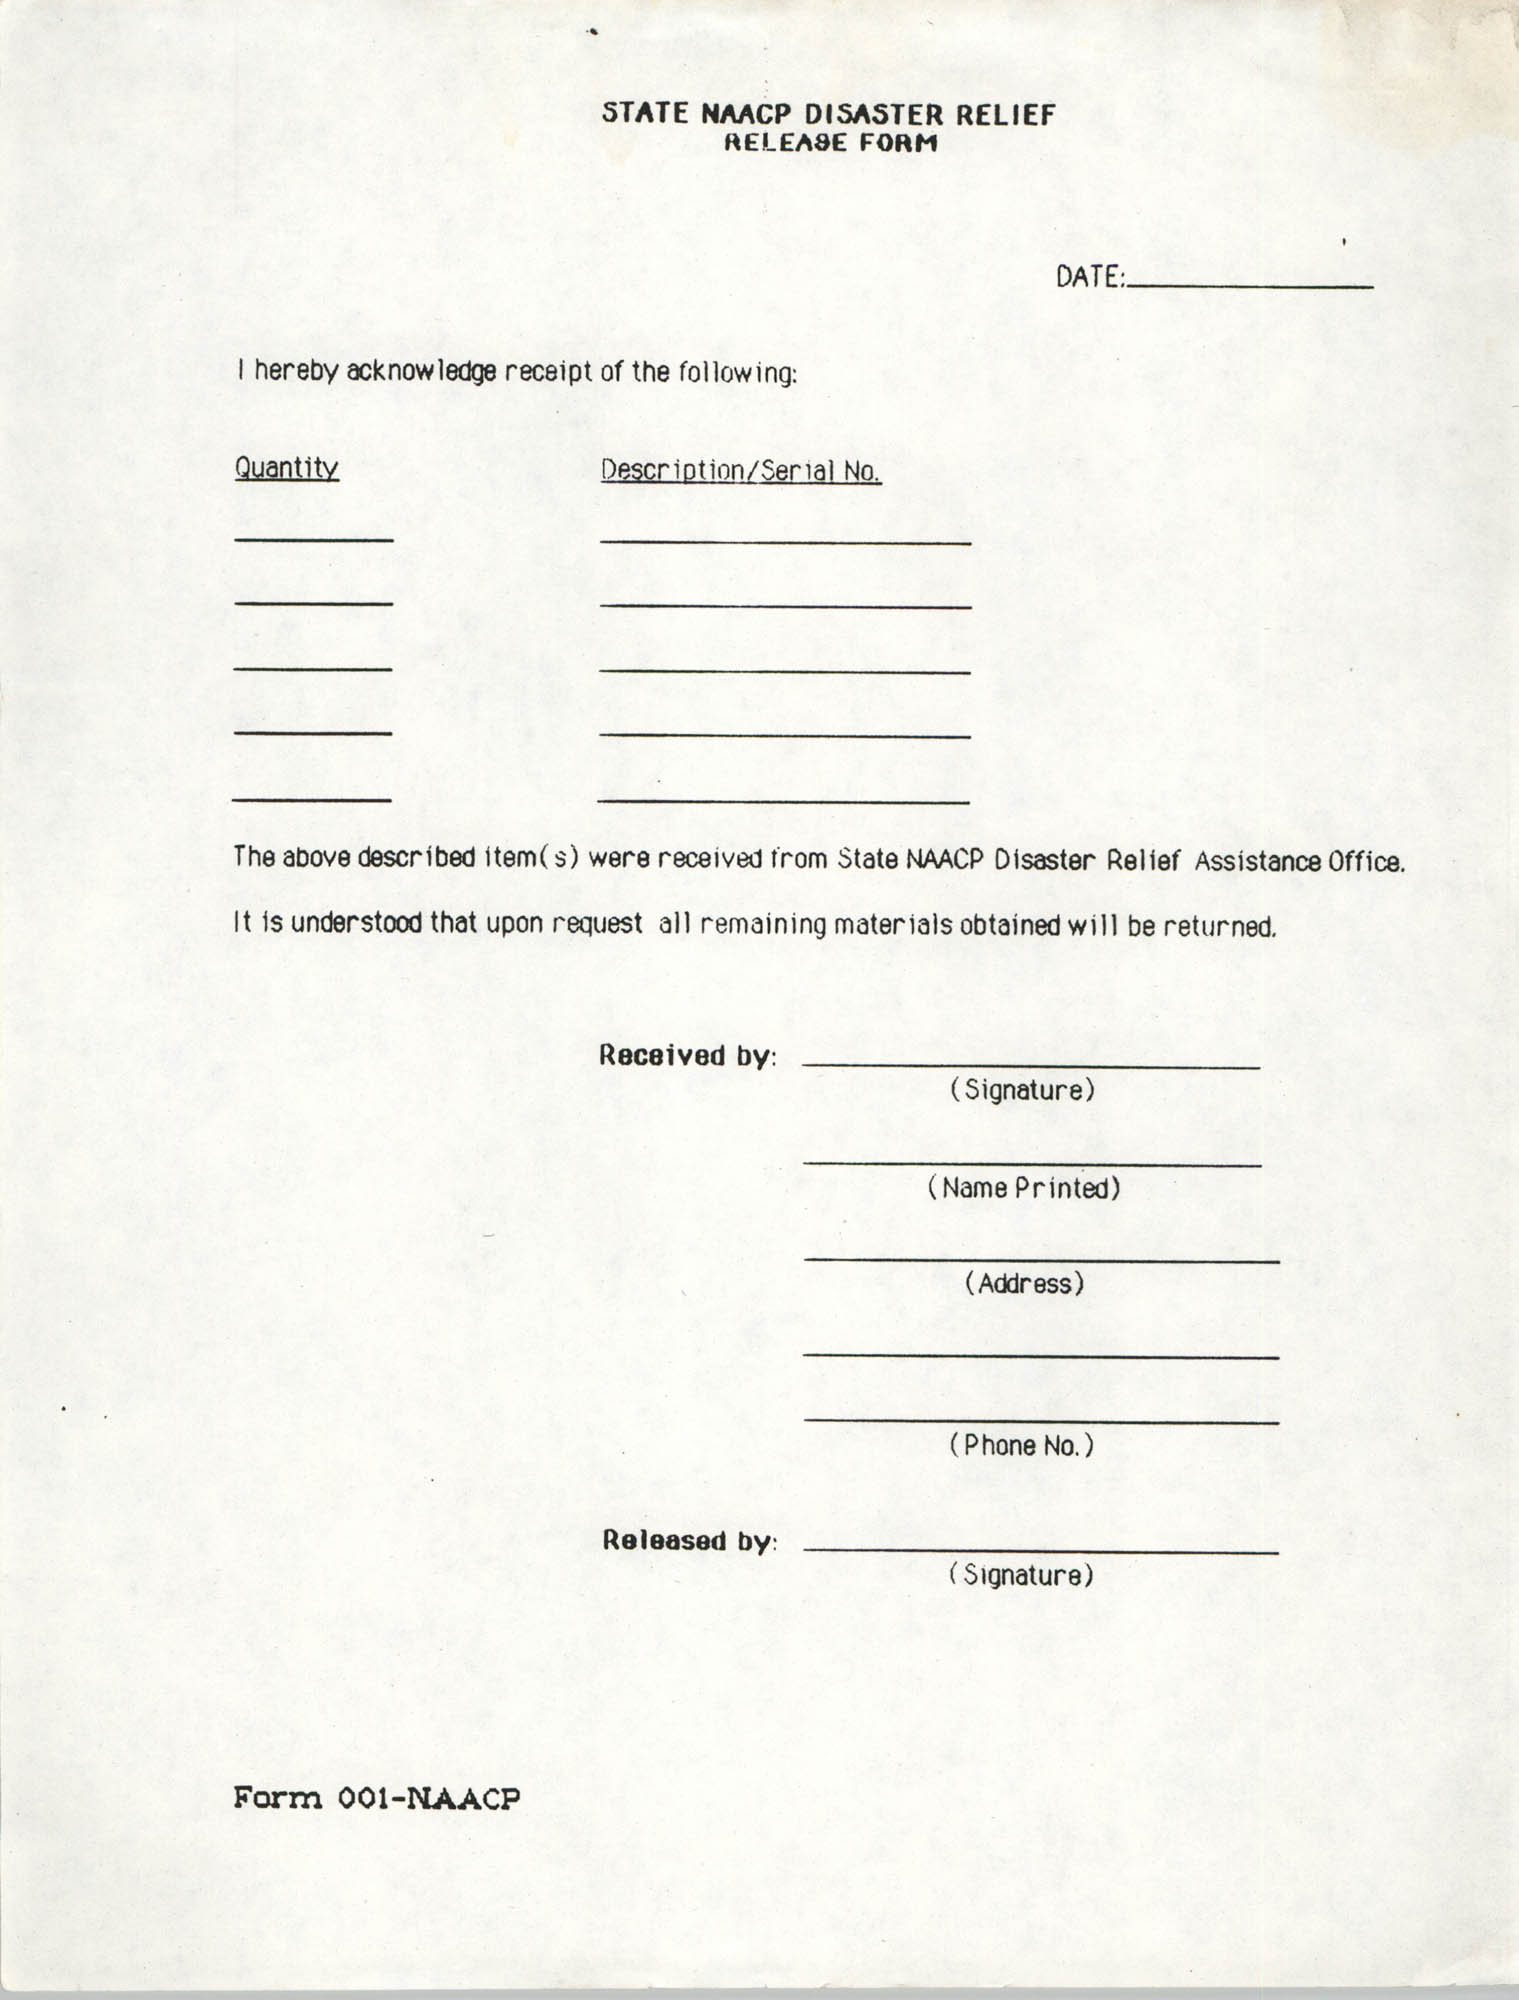 State NAACP Disaster Relief, Hurricane Huge Release Form, 1989, Page 19